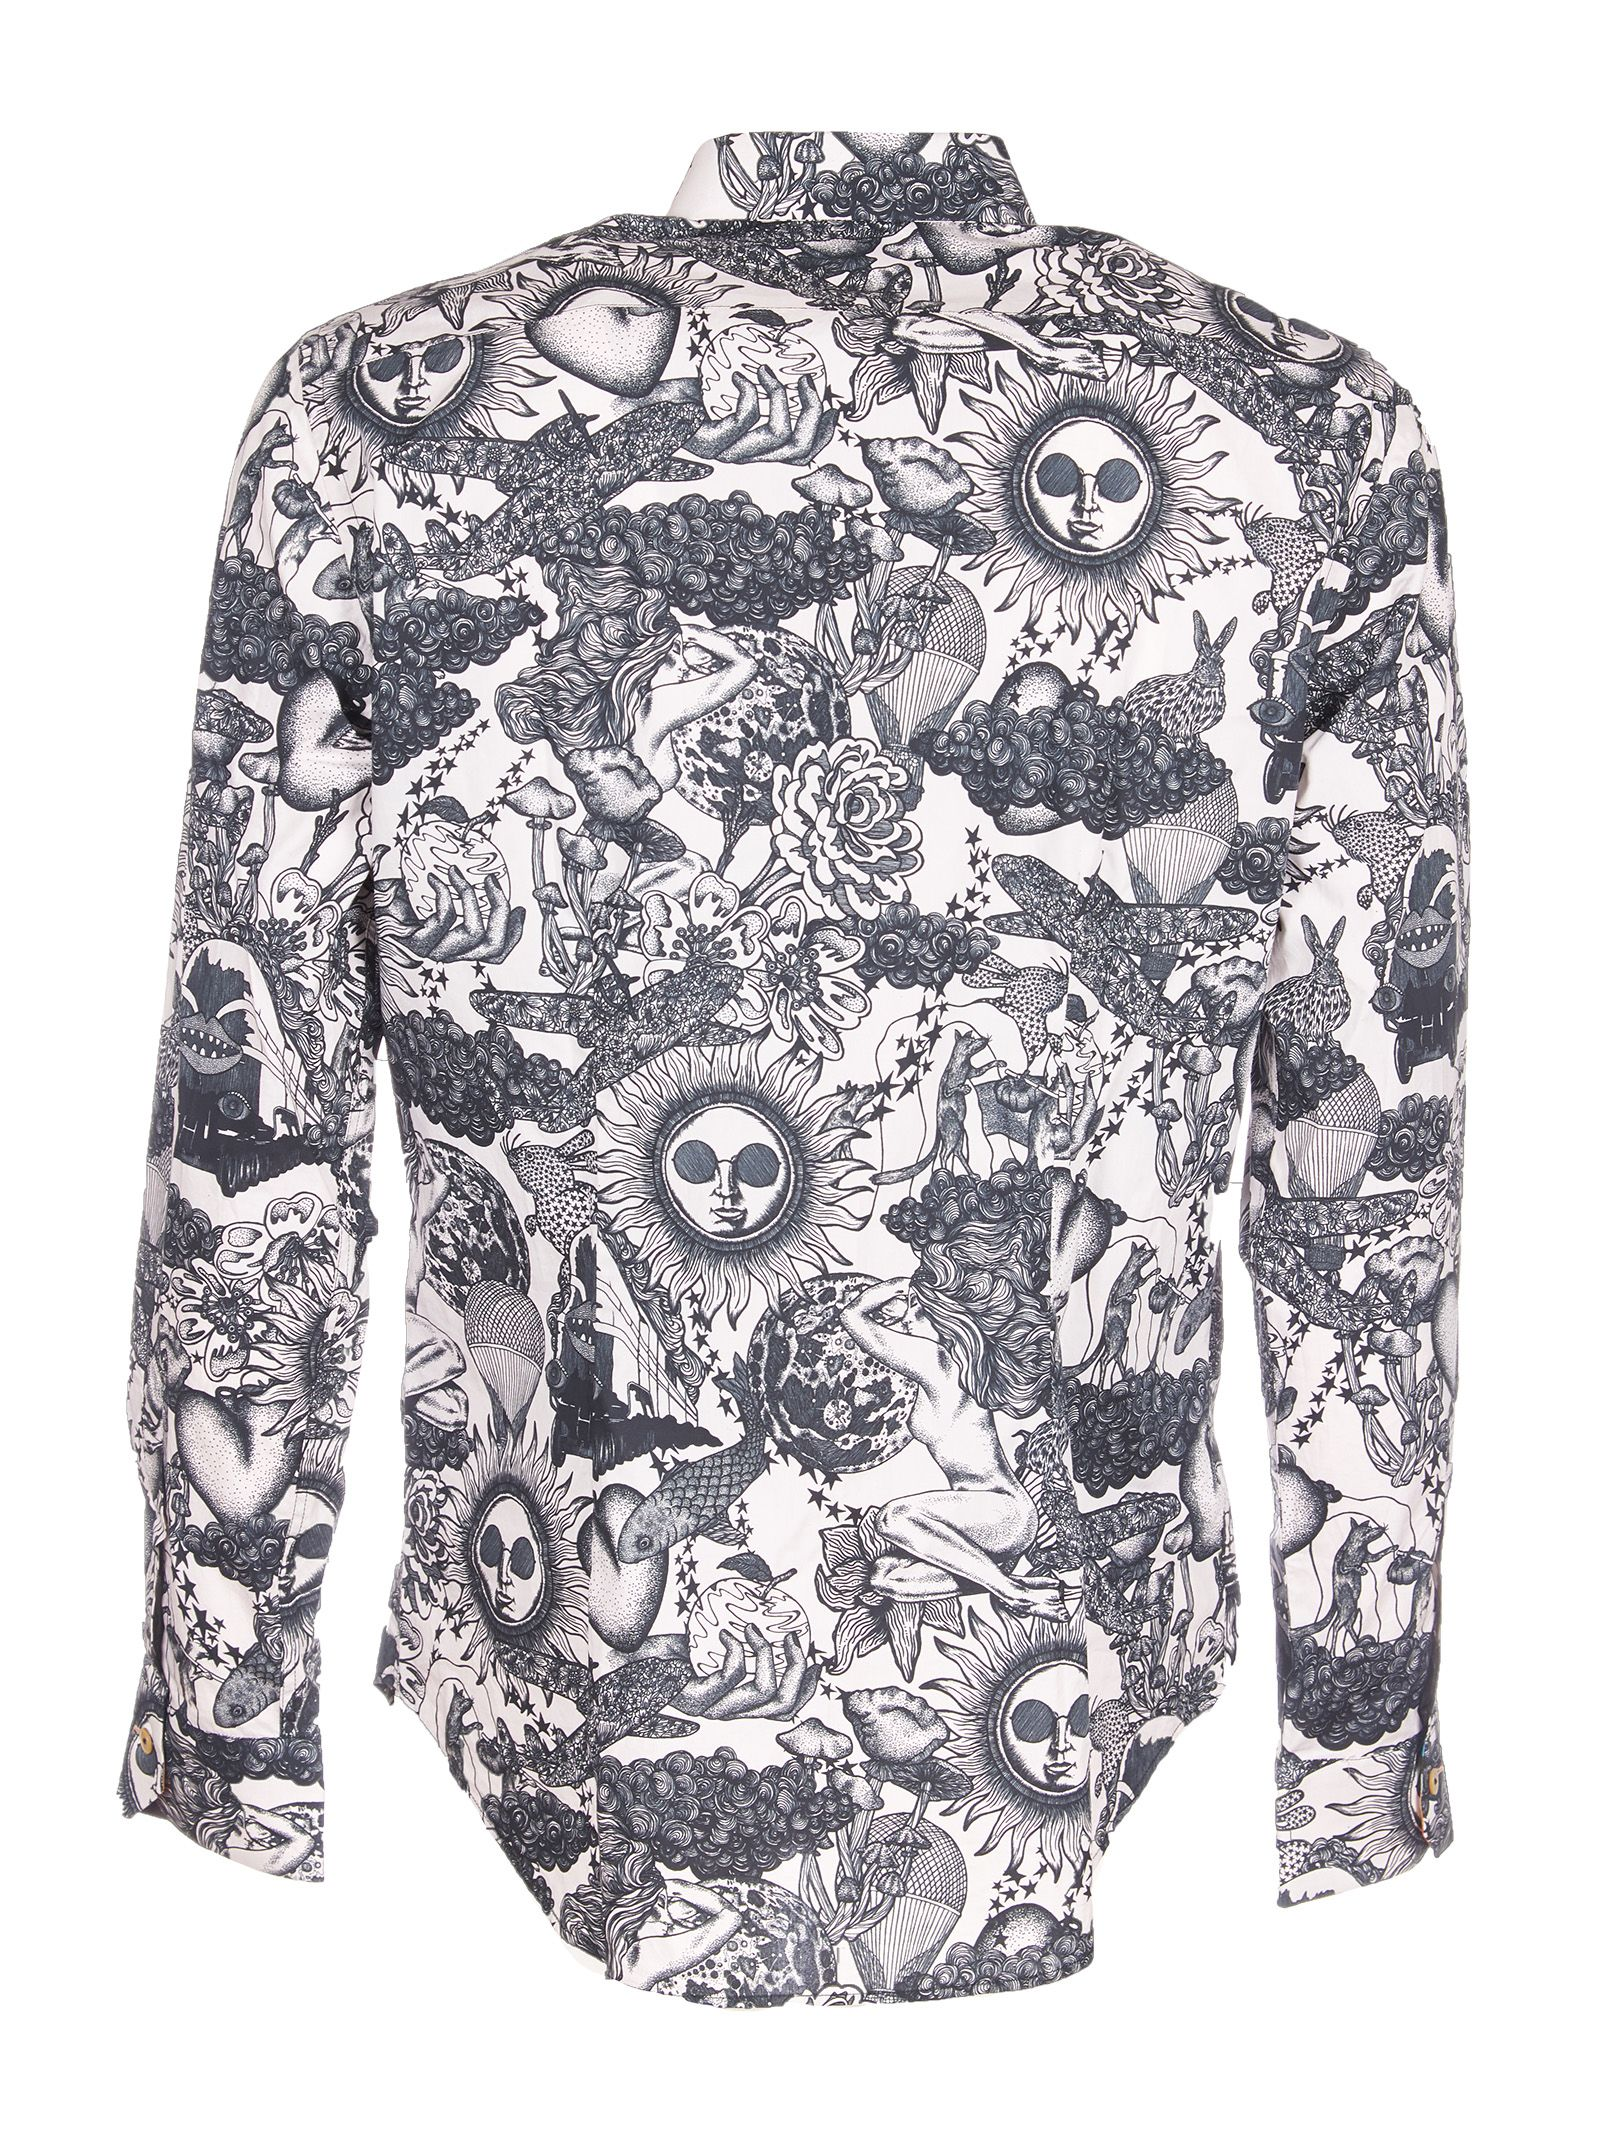 Paul Smith Large Sun Print Shirt